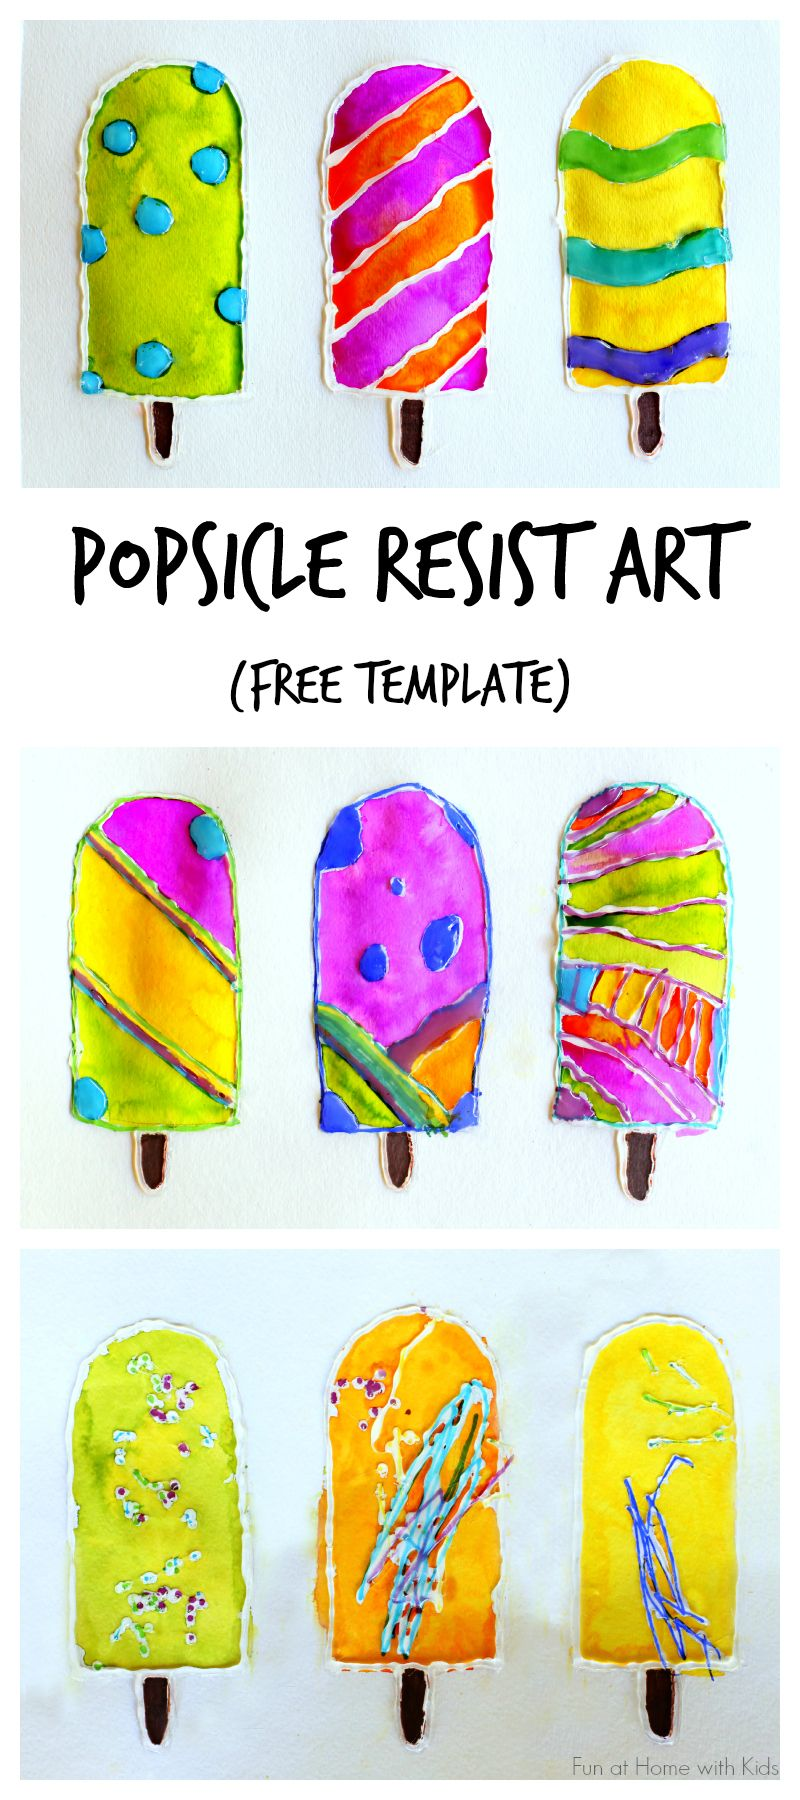 Summer Arts And Crafts Ideas For Kids Part - 35: Keep Cool This Summer With Fun Popsicle Resist Art. FREE Printable  Popsicles Can Be Used